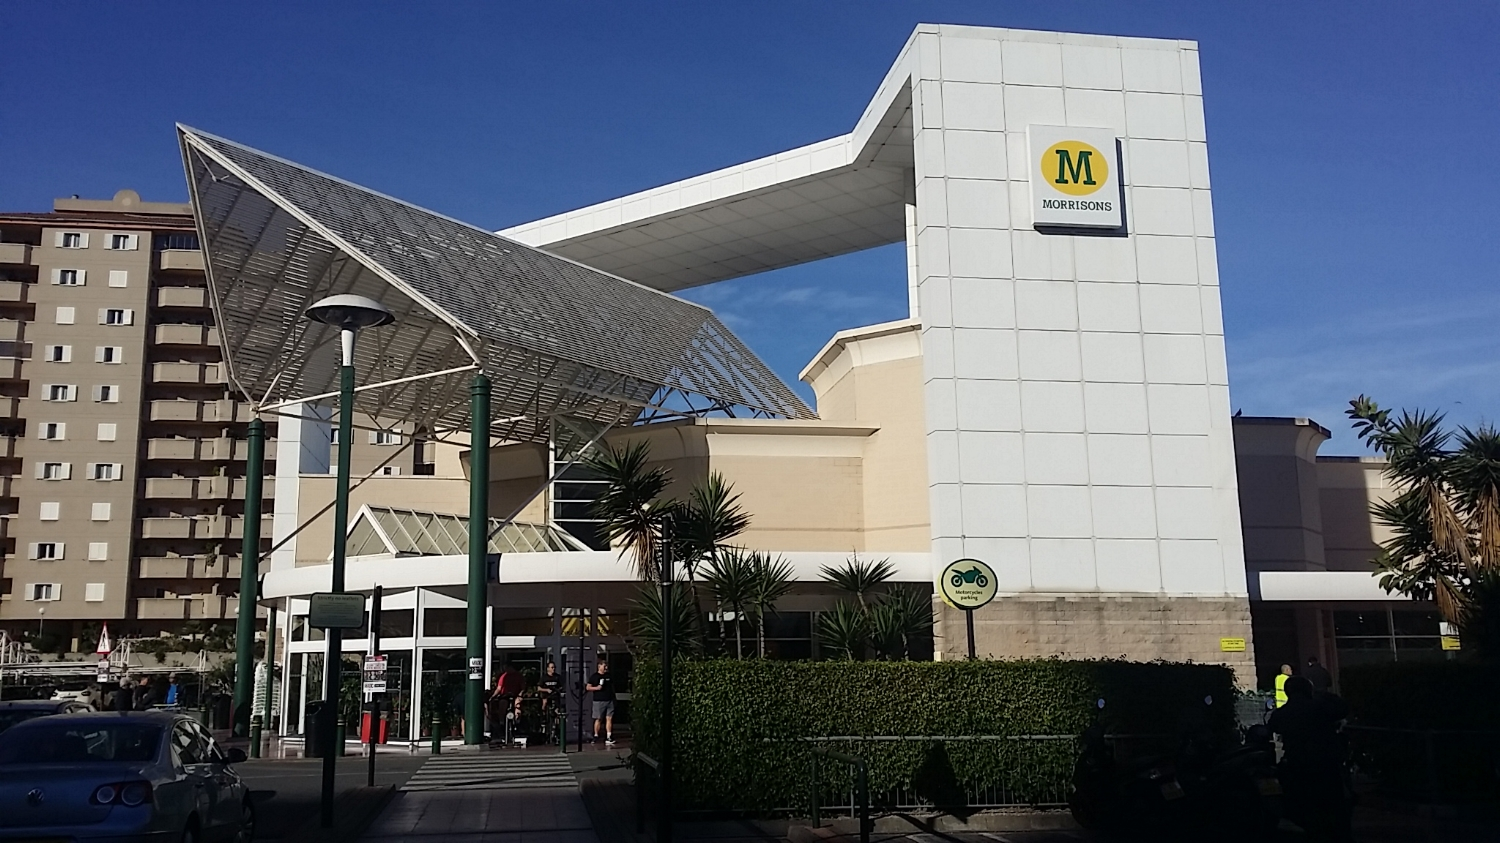 Morrisons is Marmite and much more